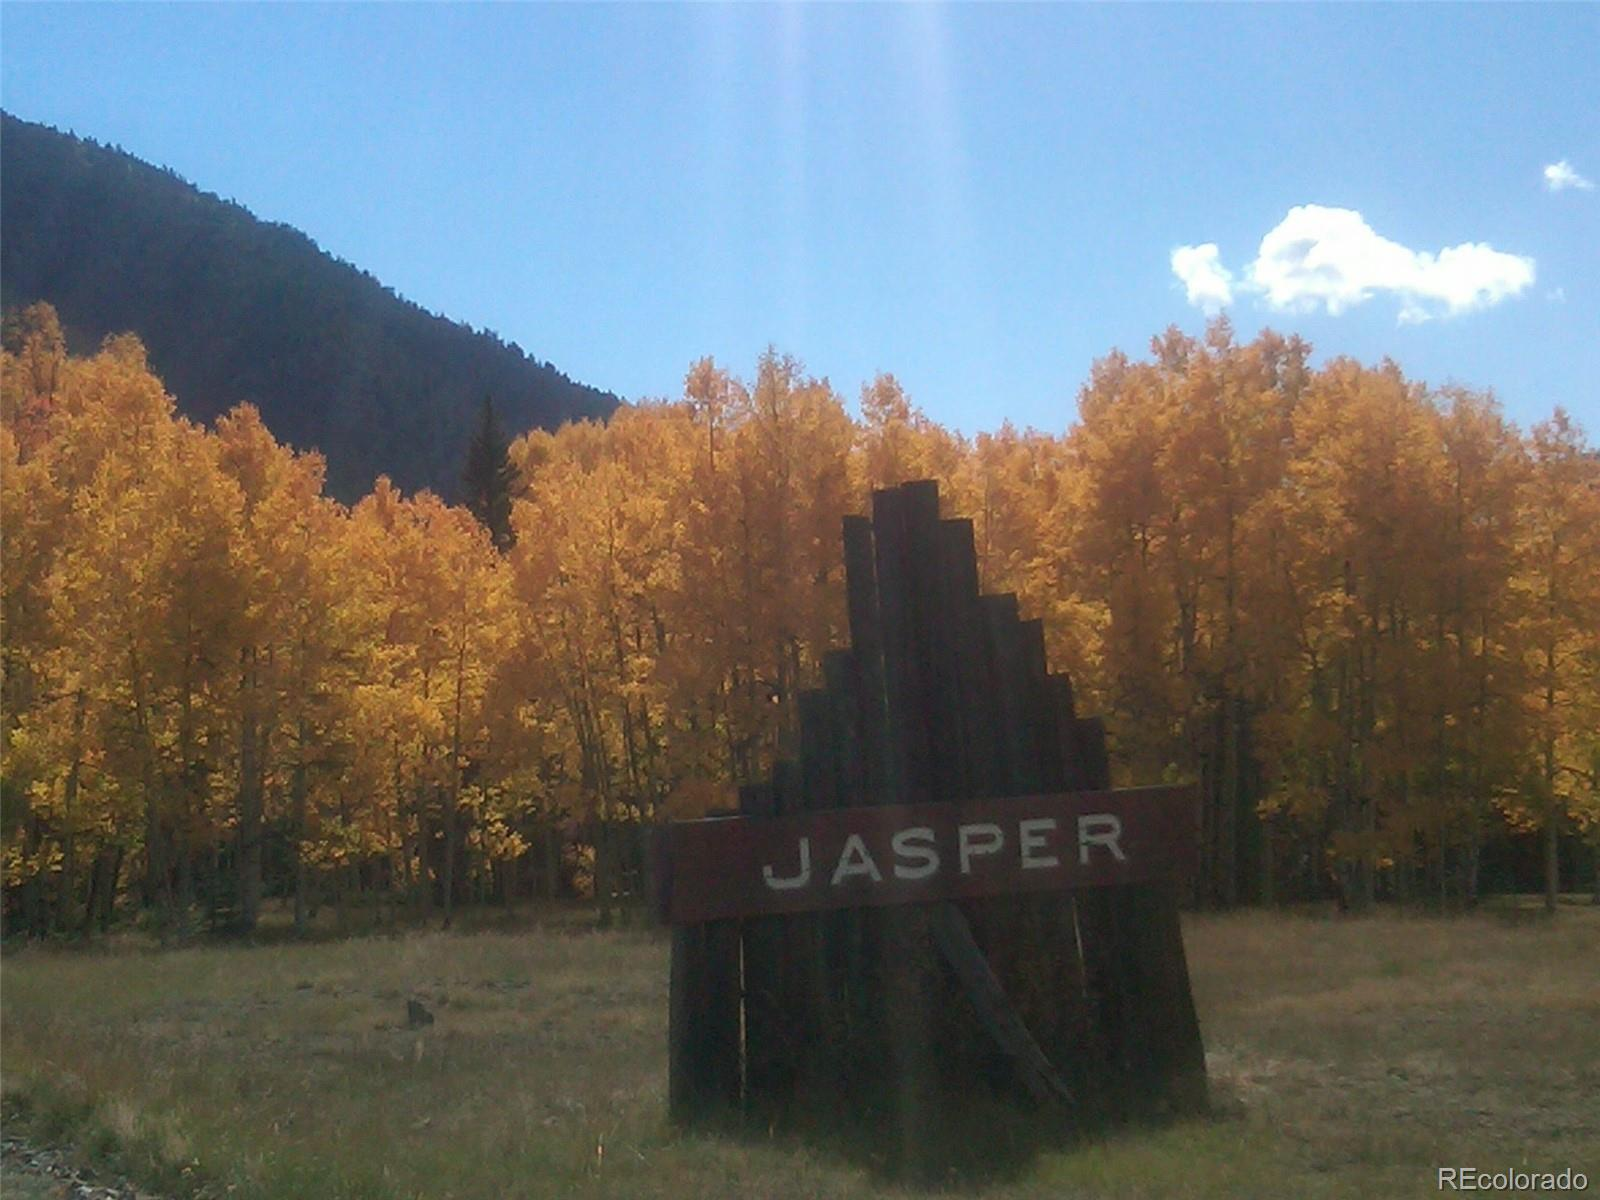 vavant land, Jasper, CO 81132 - Jasper, CO real estate listing